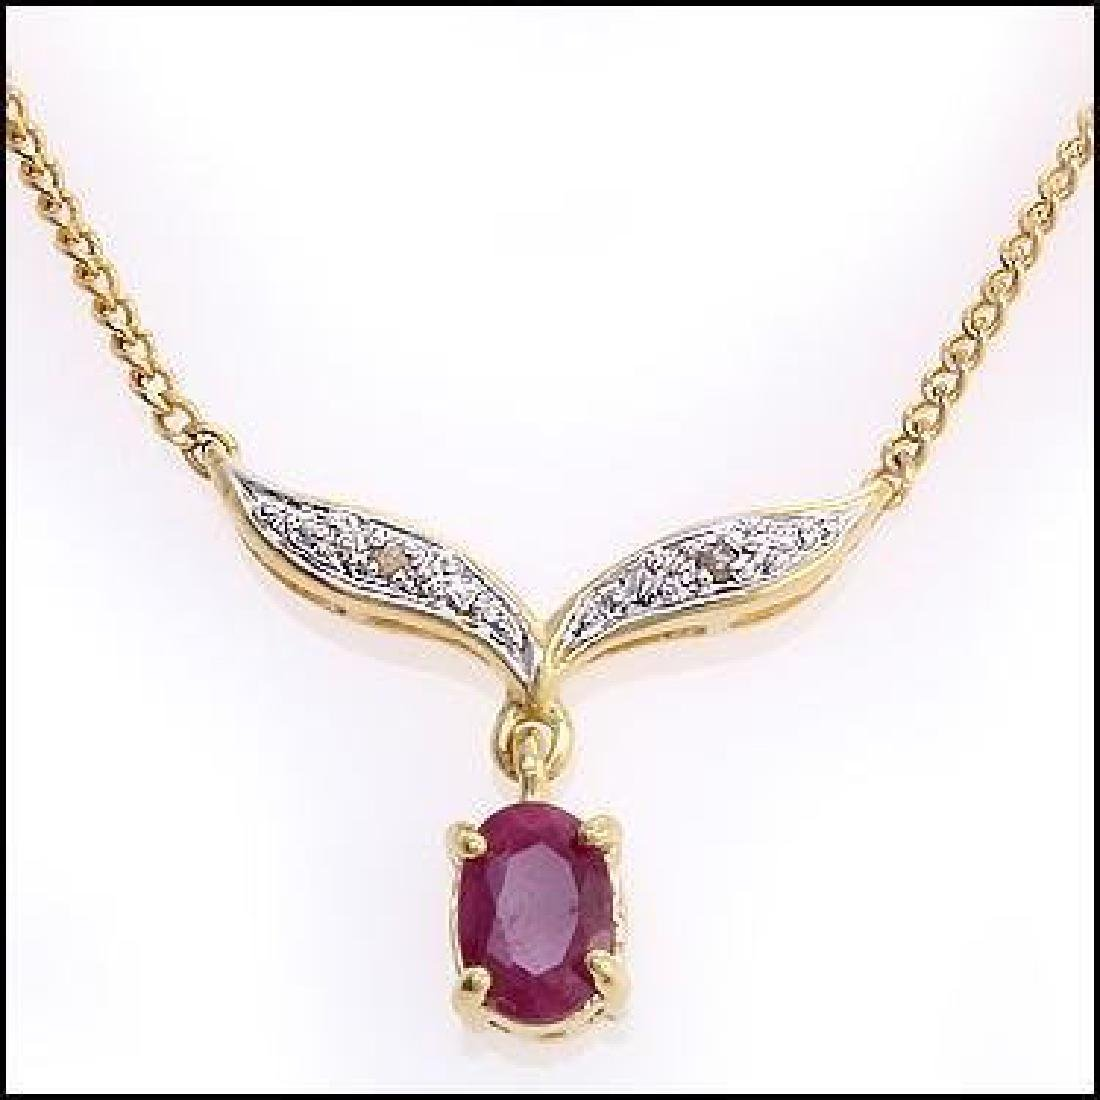 2.91 CT Ruby & Diamond Designer Necklace $855 - 2